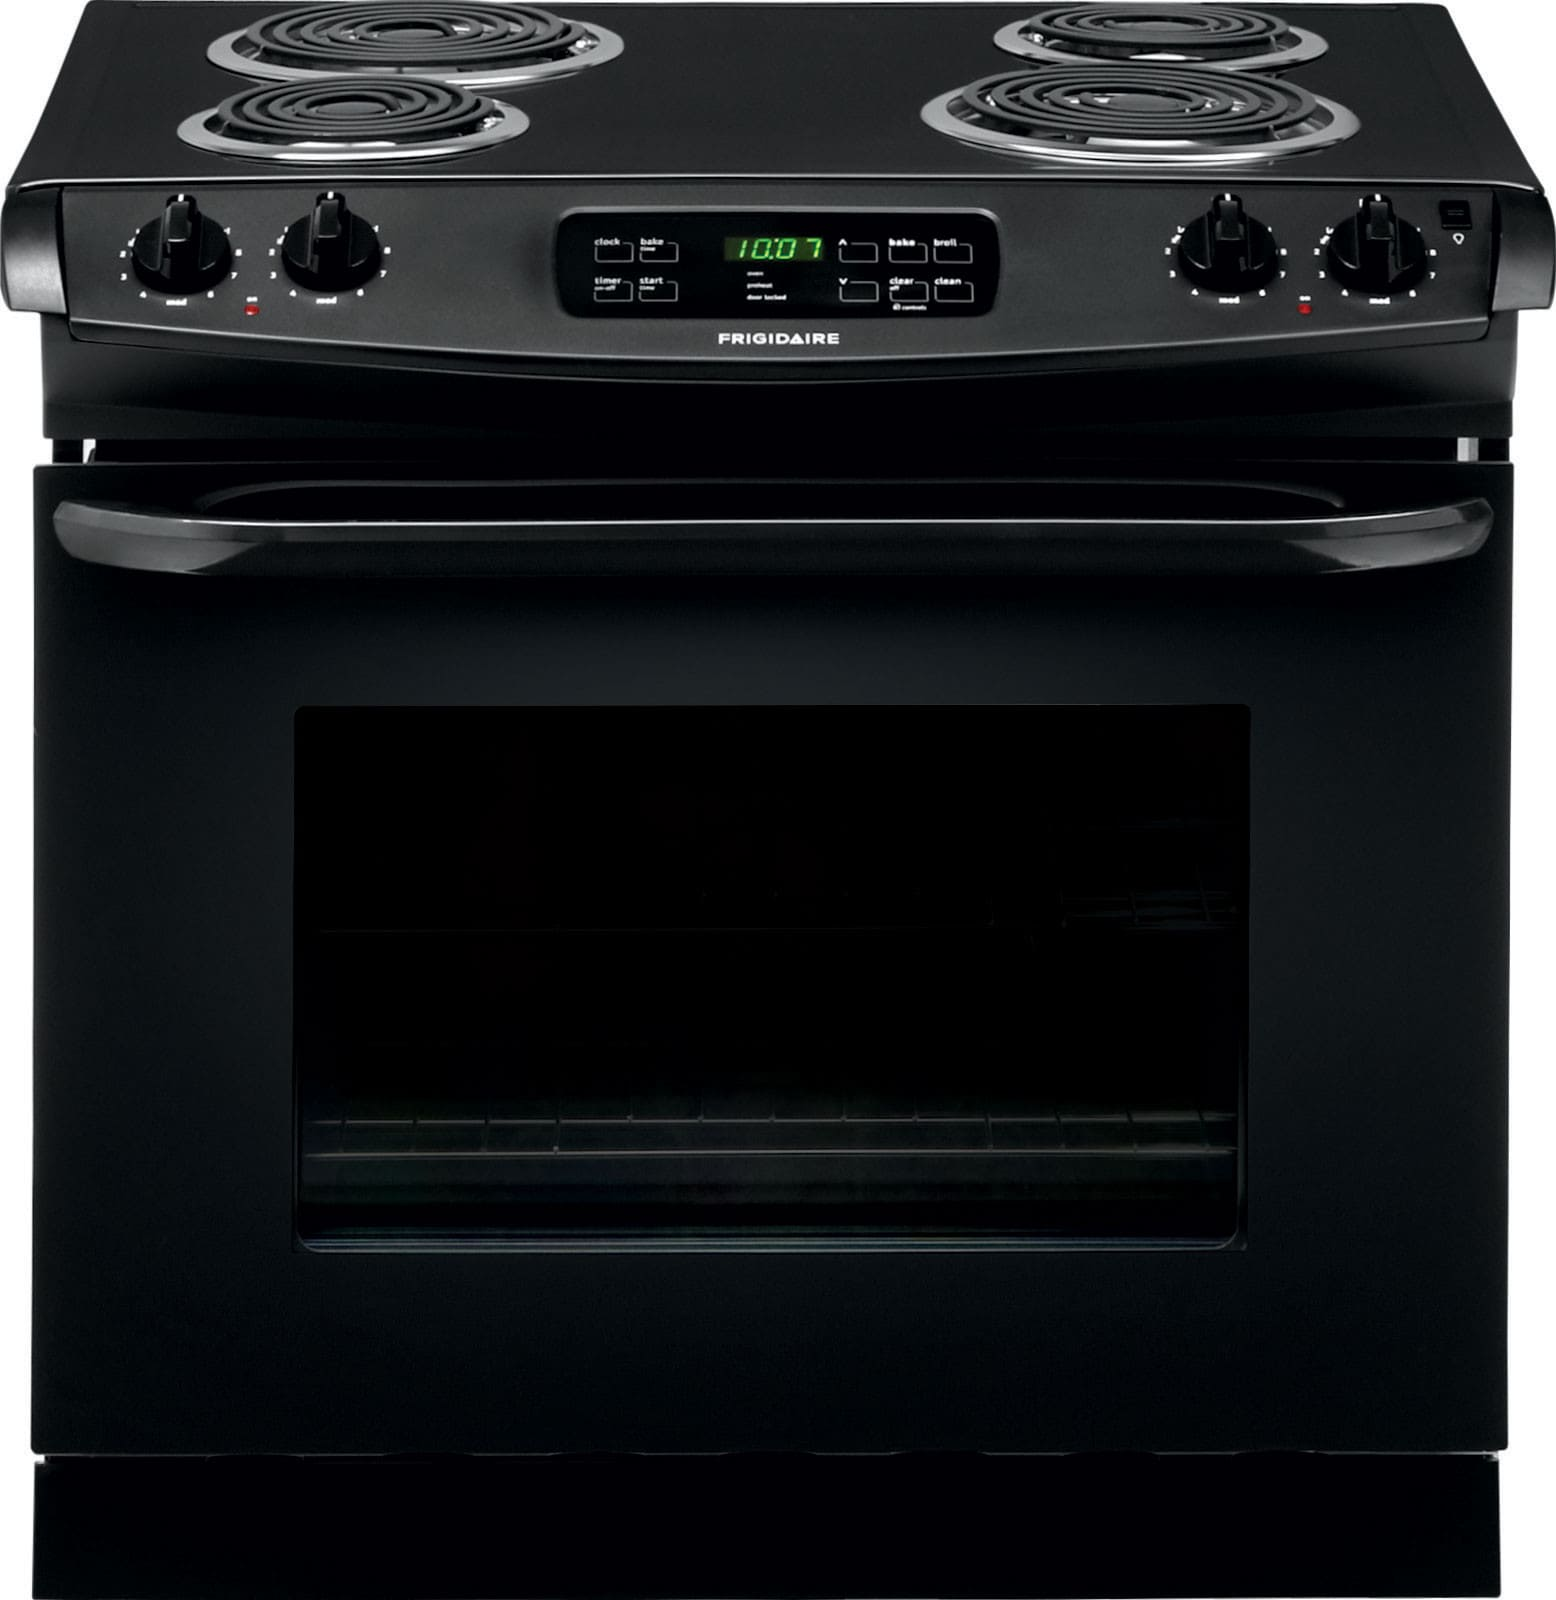 Frigidaire Ffed3015pb 30 Inch Drop In Electric Range With Multiple Broil Options And Ready Select Controls Self Clean 4 Coil Elements 6 Cu Ft